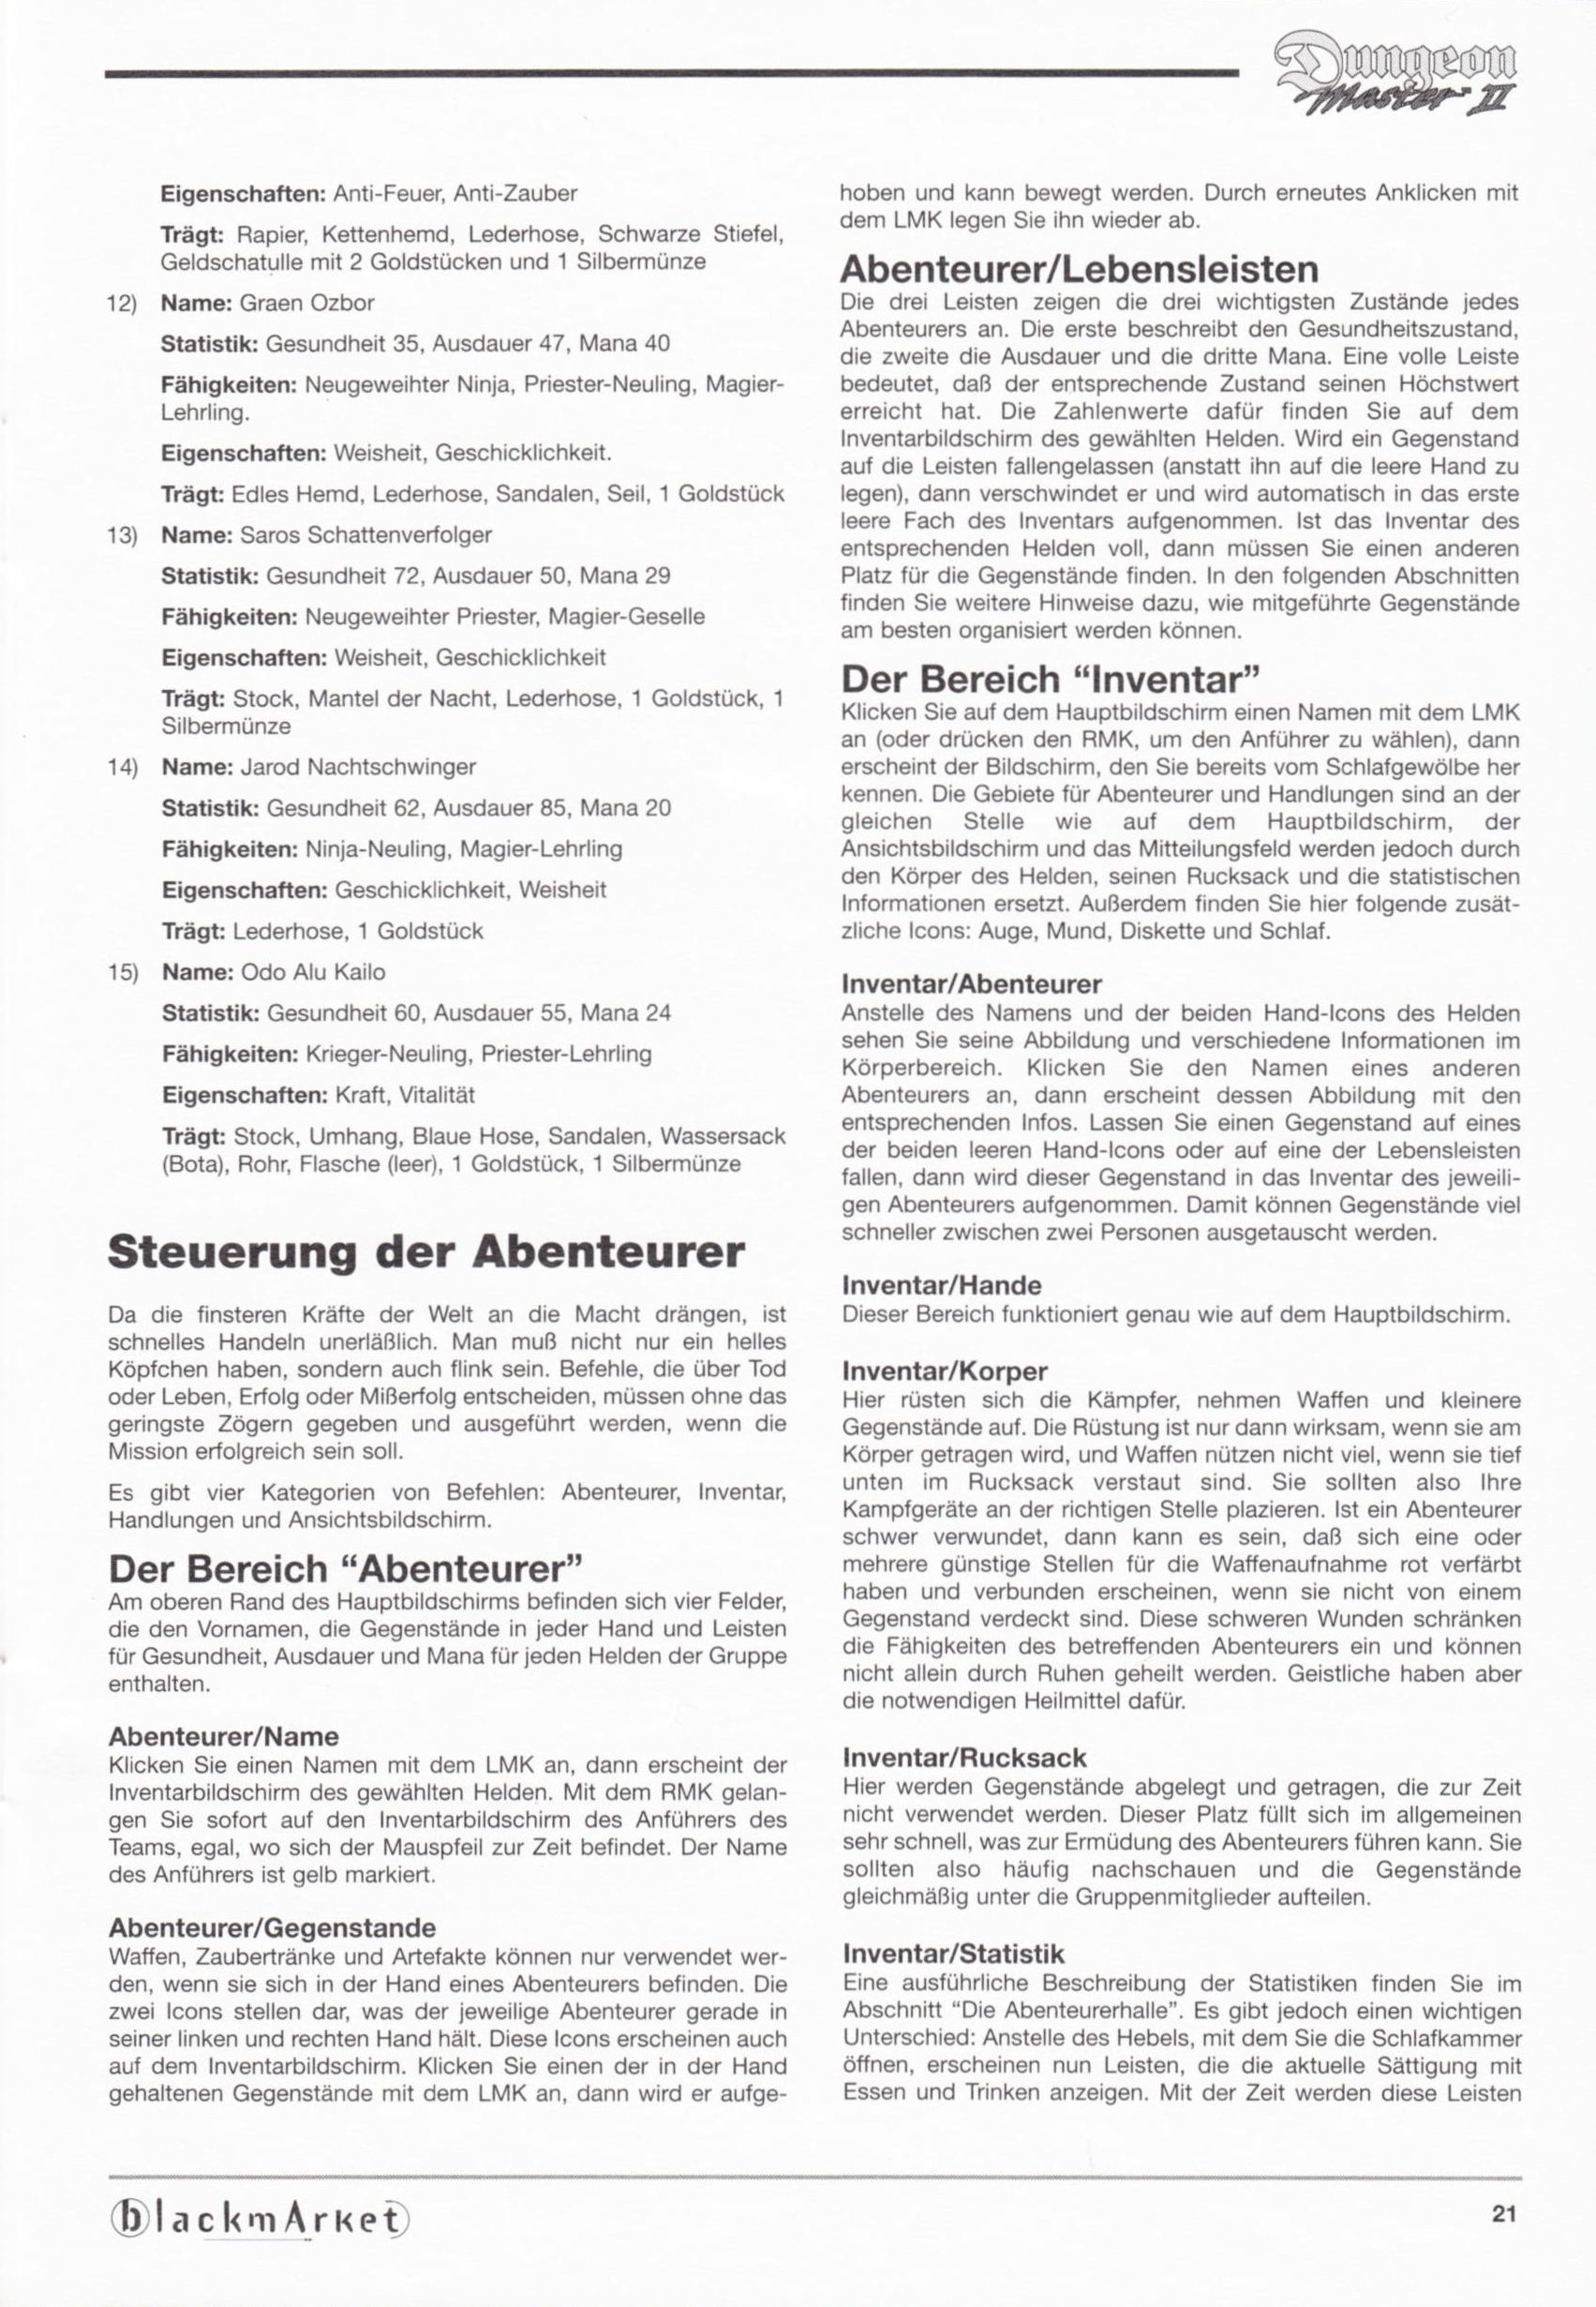 Game - Dungeon Master II - DE - PC - Blackmarket With Manual - Manual - Page 023 - Scan